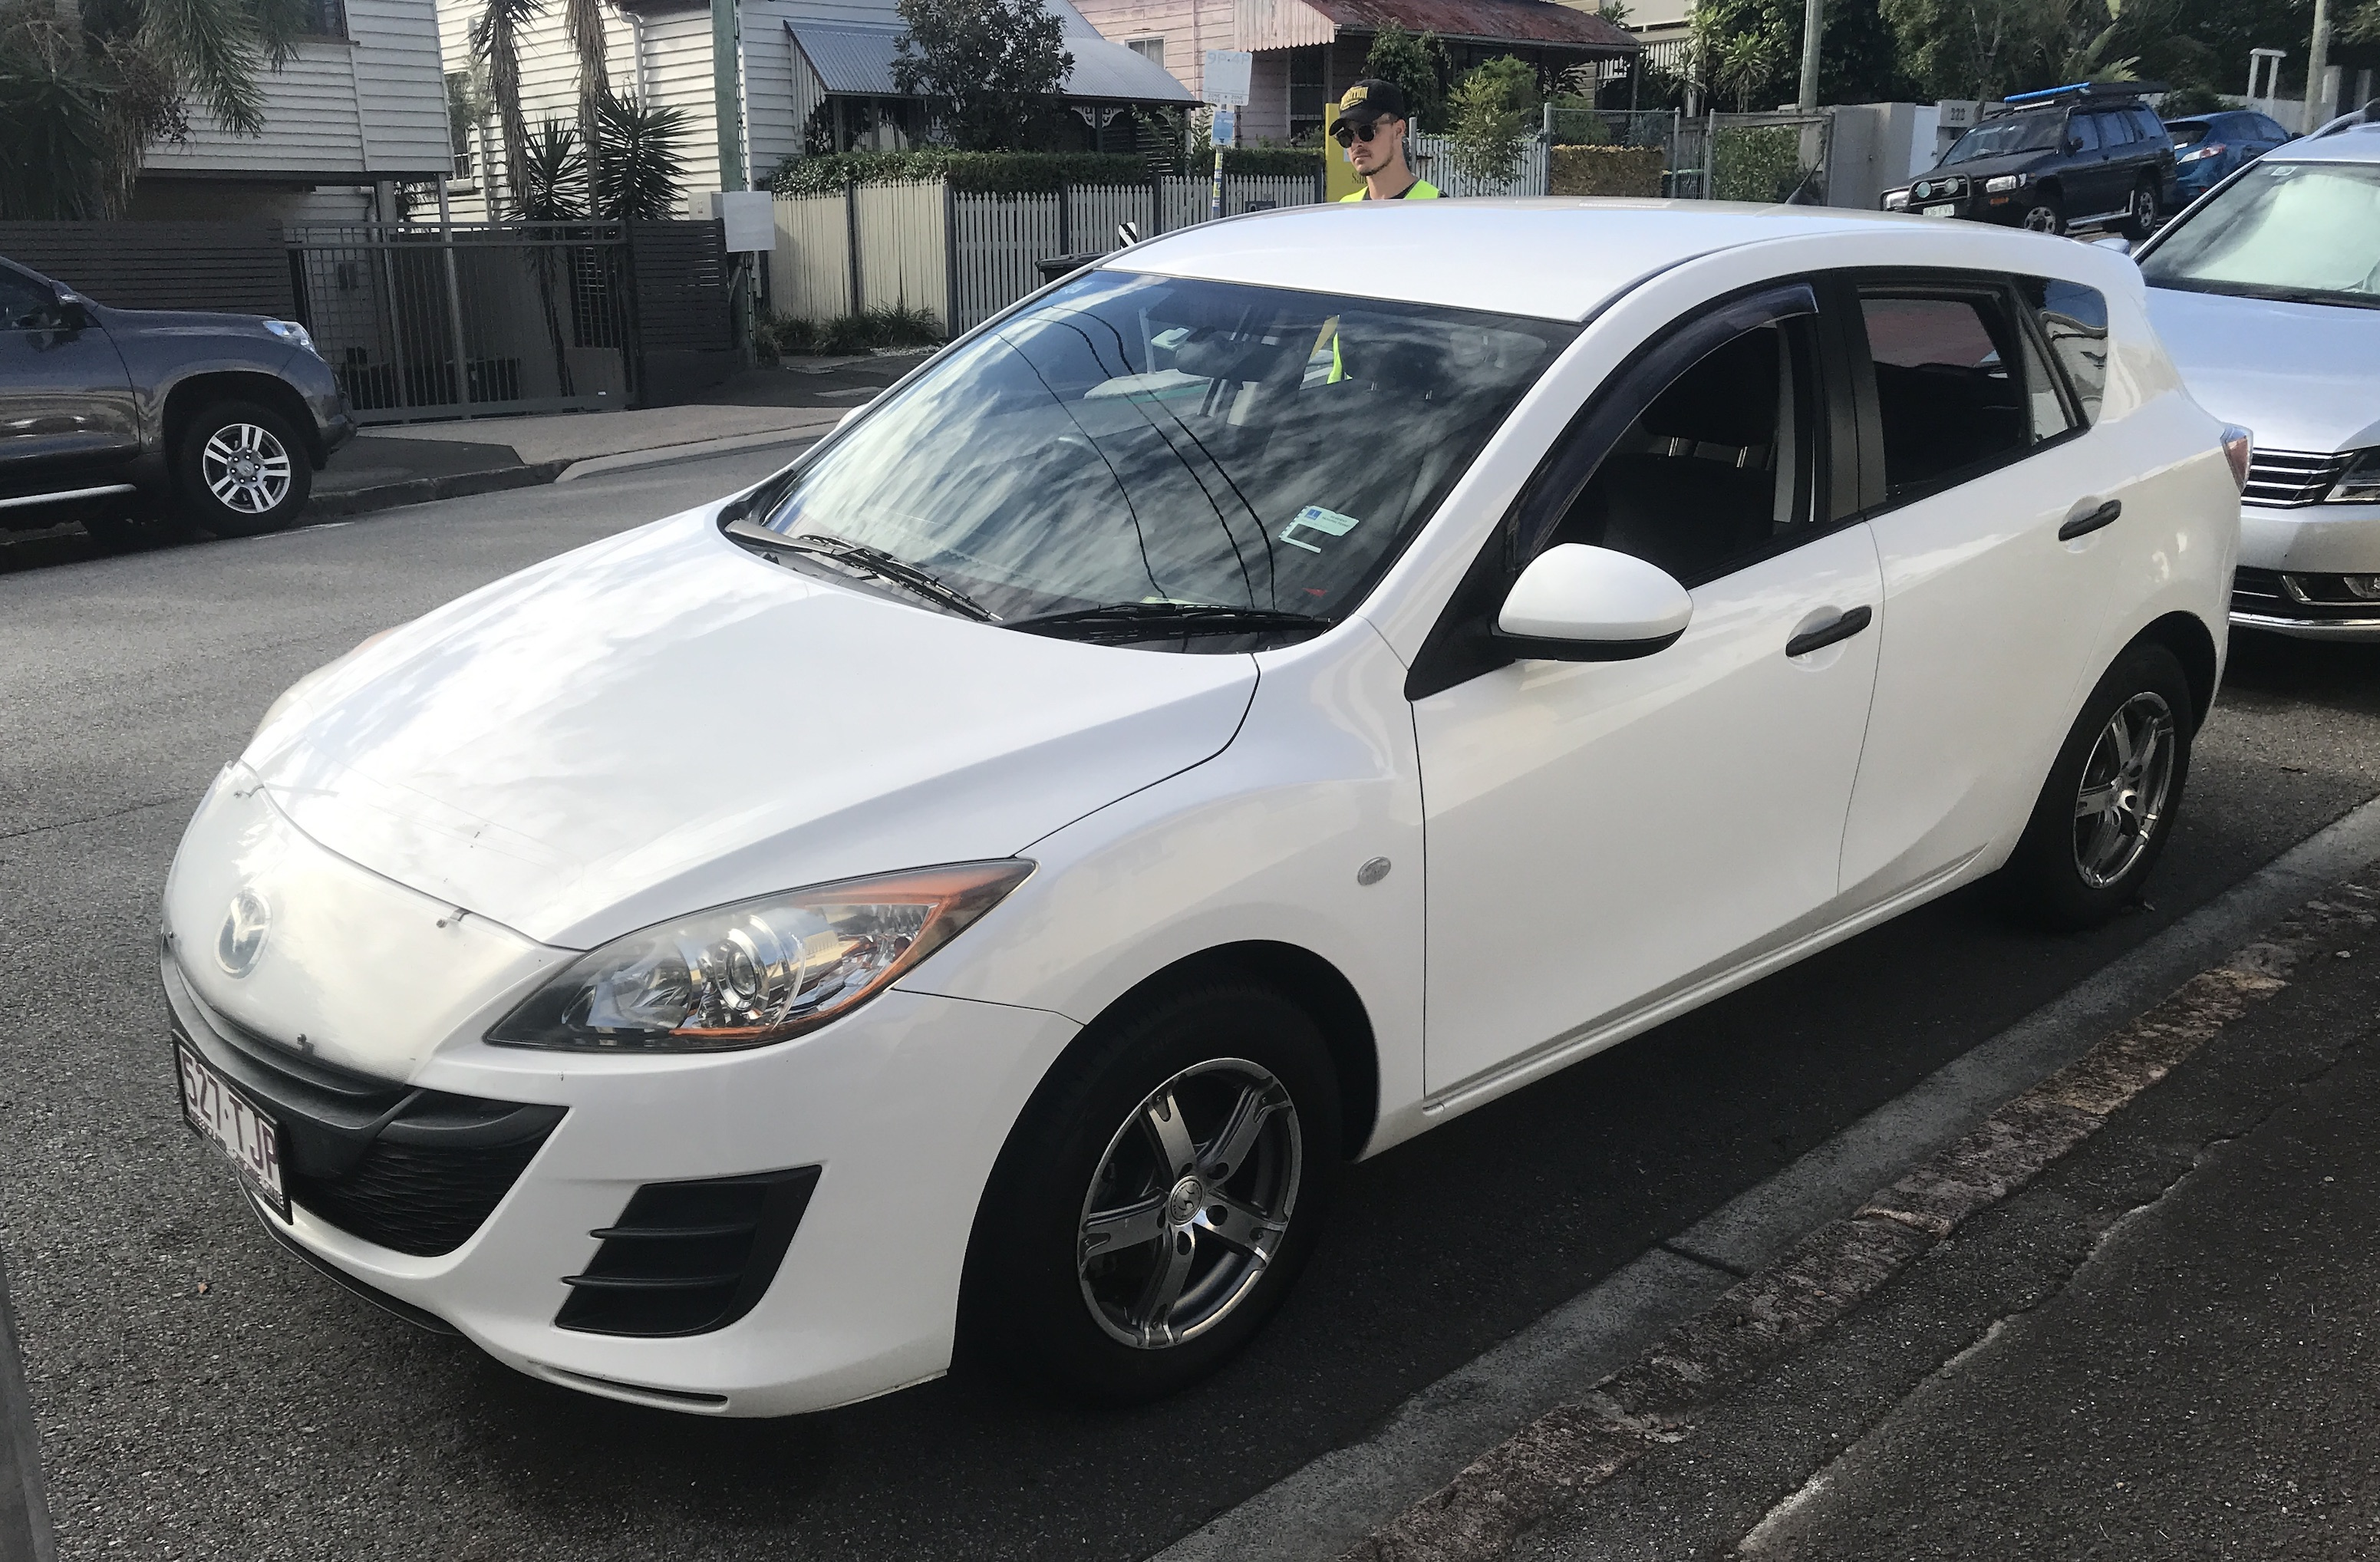 Picture of Lauren's 2009 Mazda 3